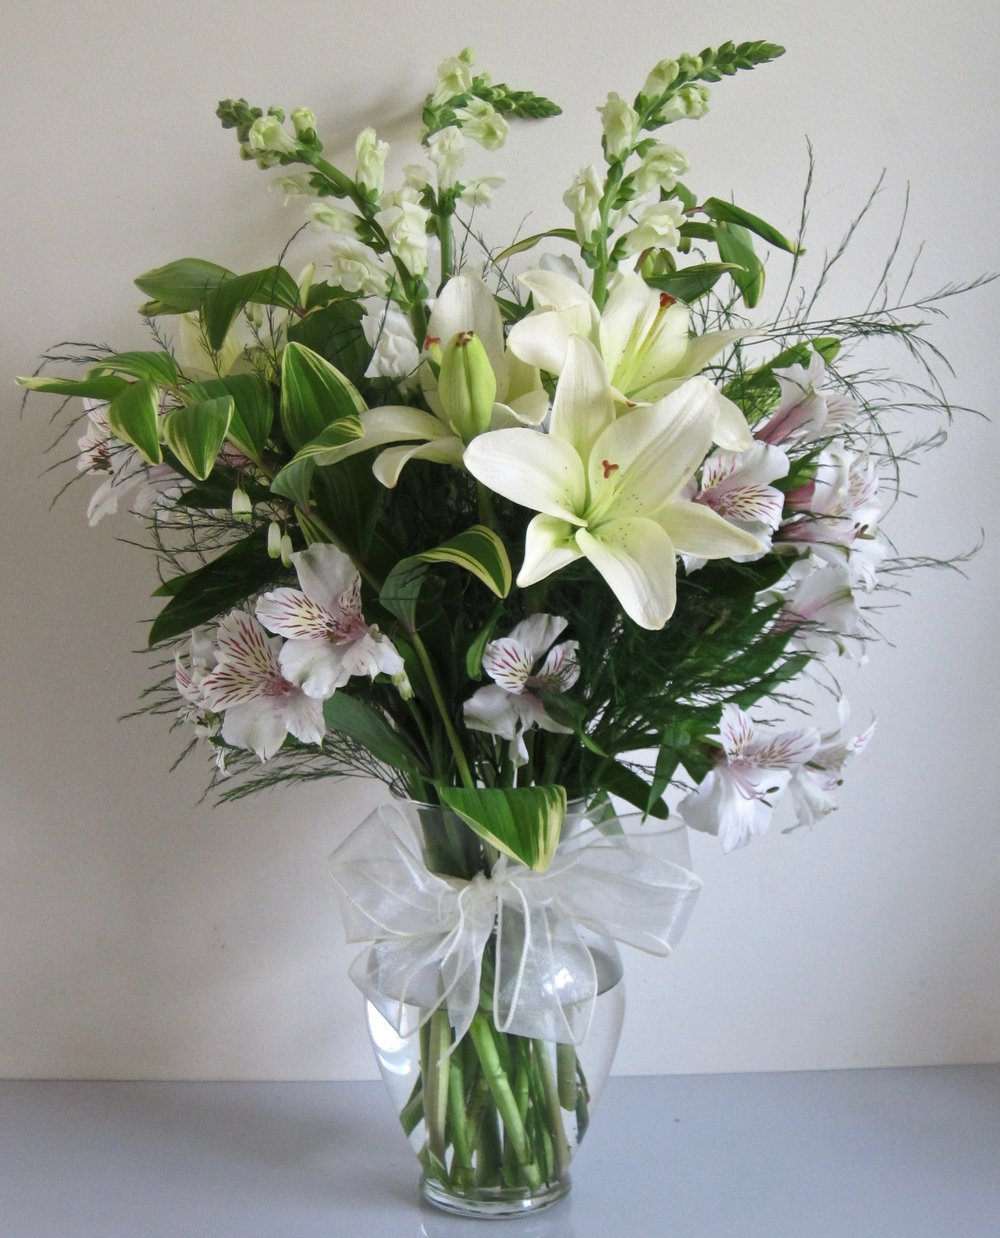 WHITE BOUQUET   Lilies, alstroemeria, snapdragons and ferns, $50.